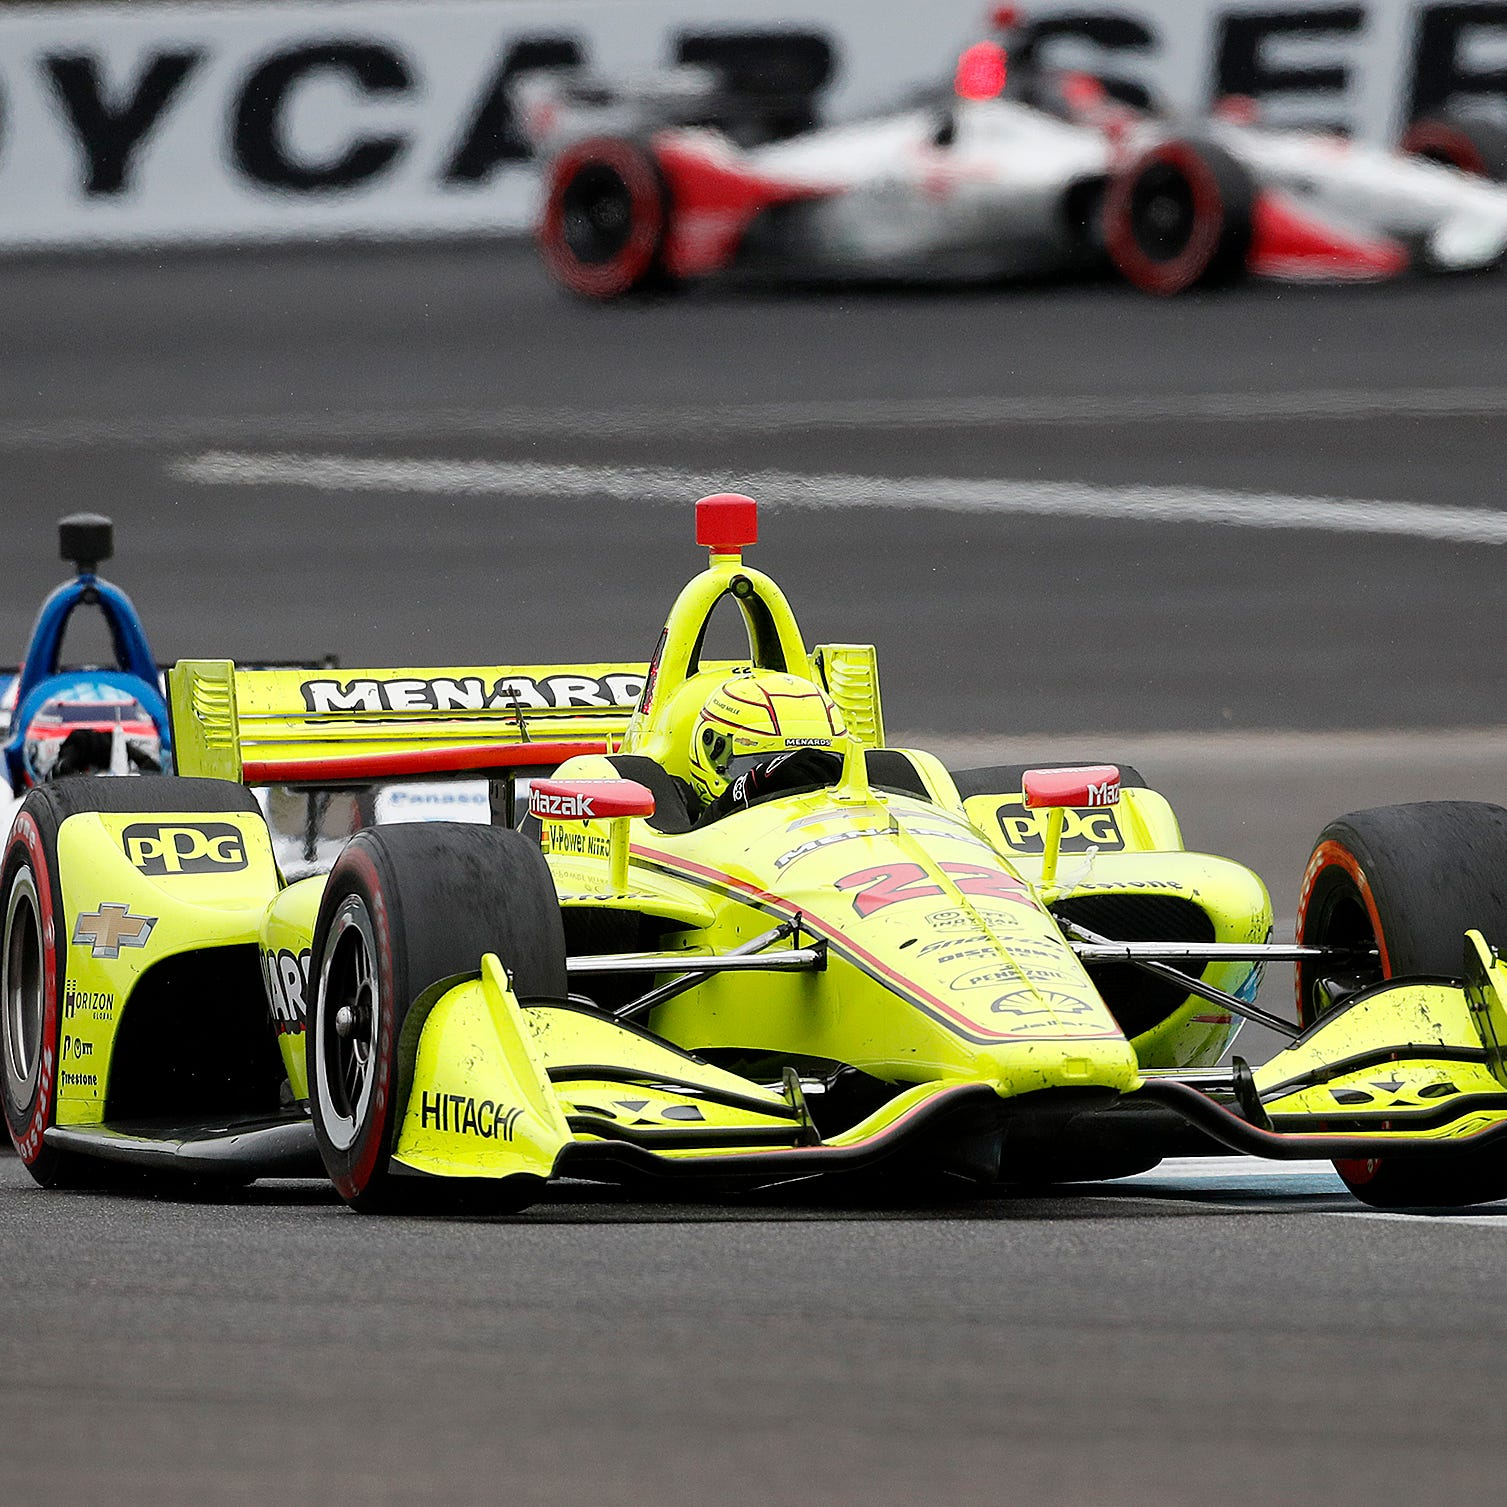 Simon Pagenaud charges late to win the 2019 IndyCar Grand Prix